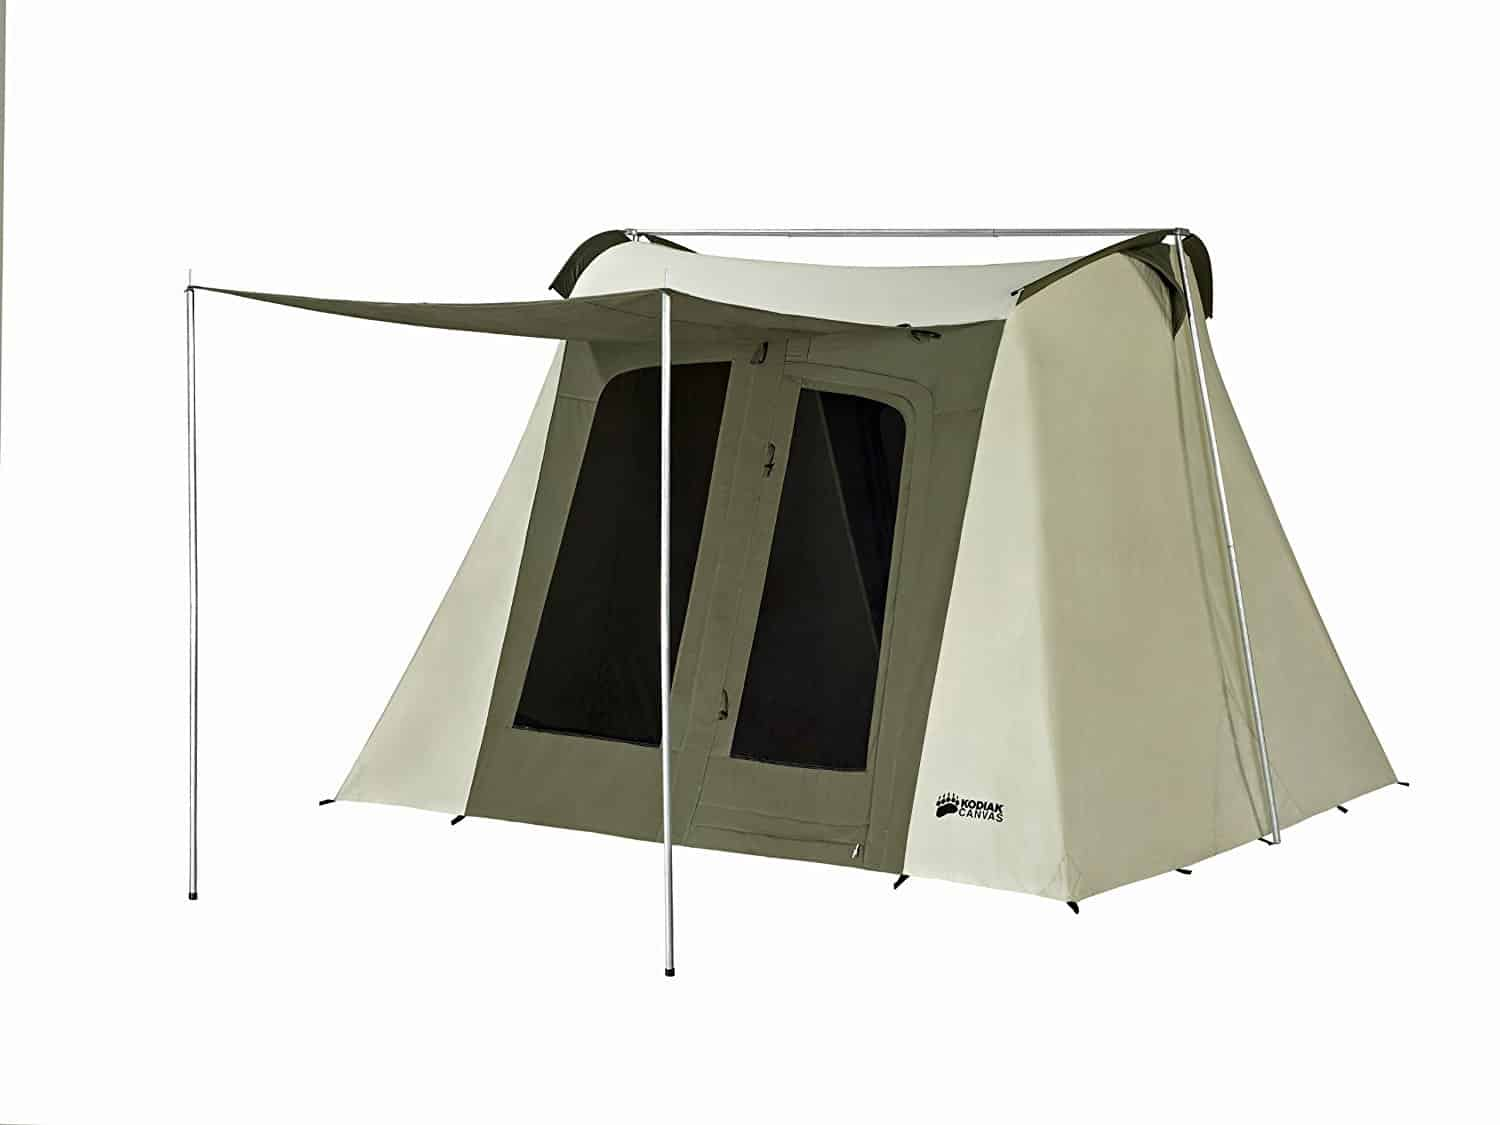 Kodiak Canvas Flex-Bow 6 person Canvas Tent